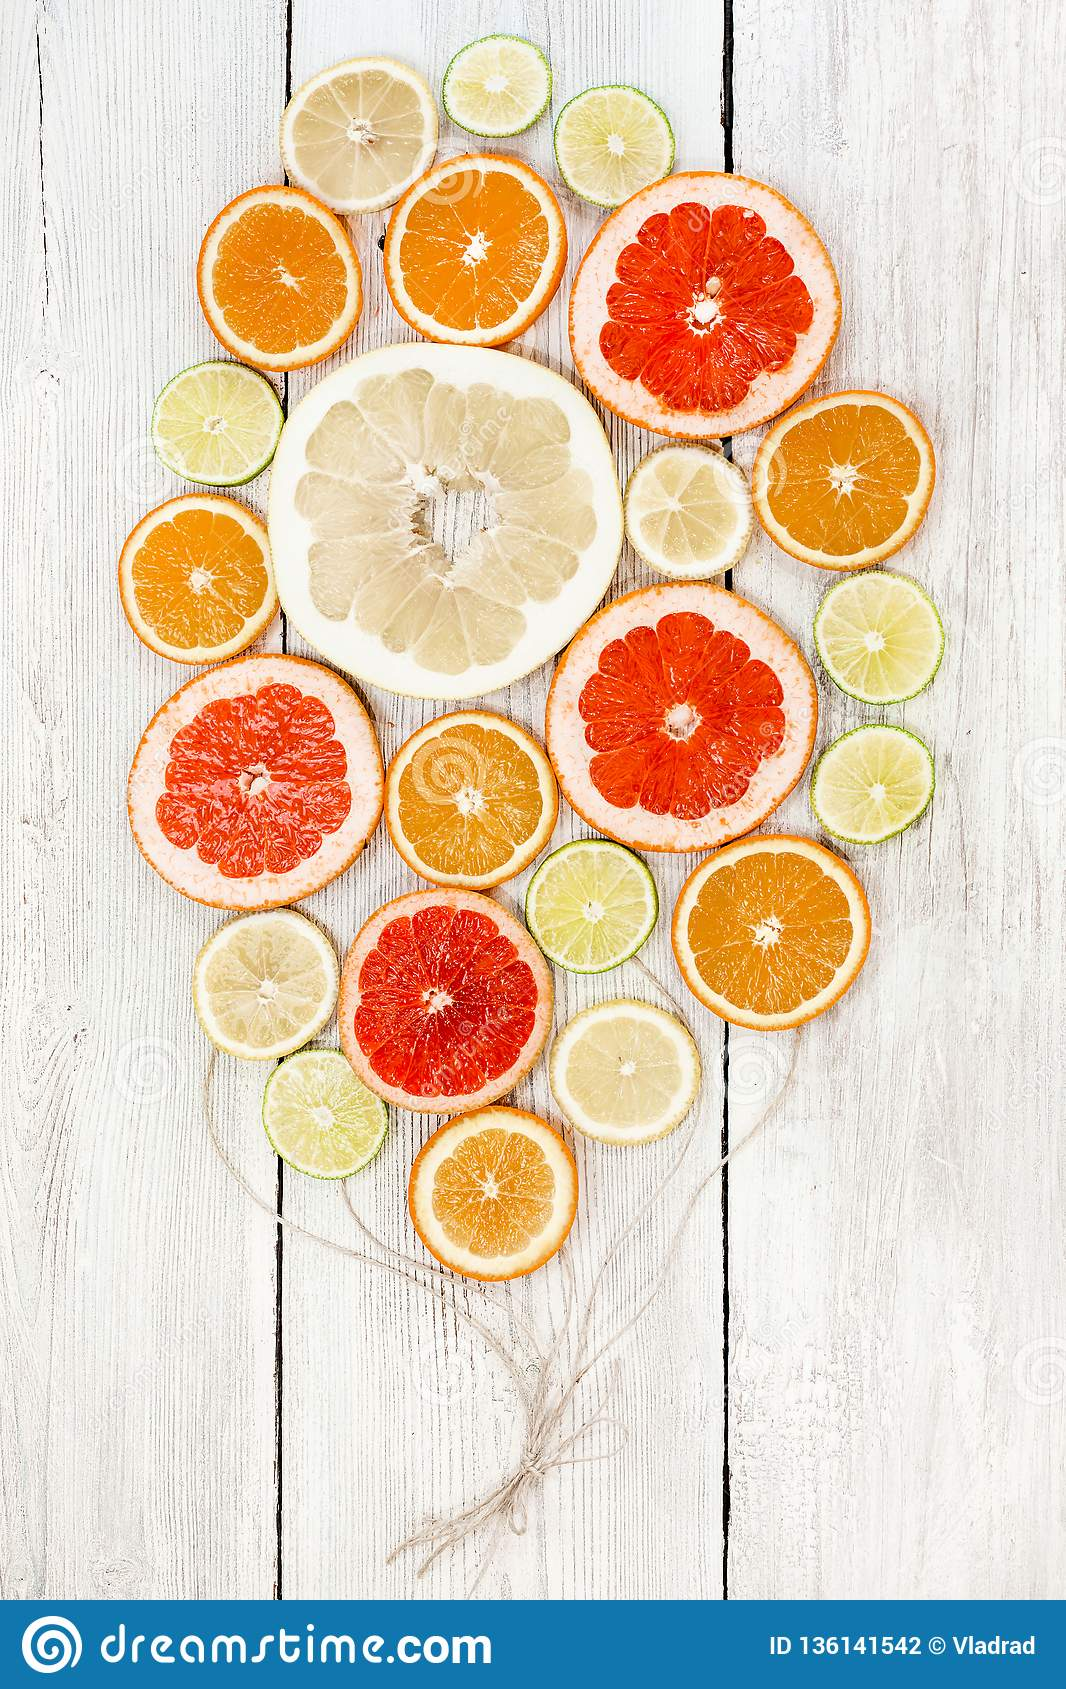 Fresh bright juicy citrus sliced and collected together with craft ropes as balloons. In white wood background. lemon